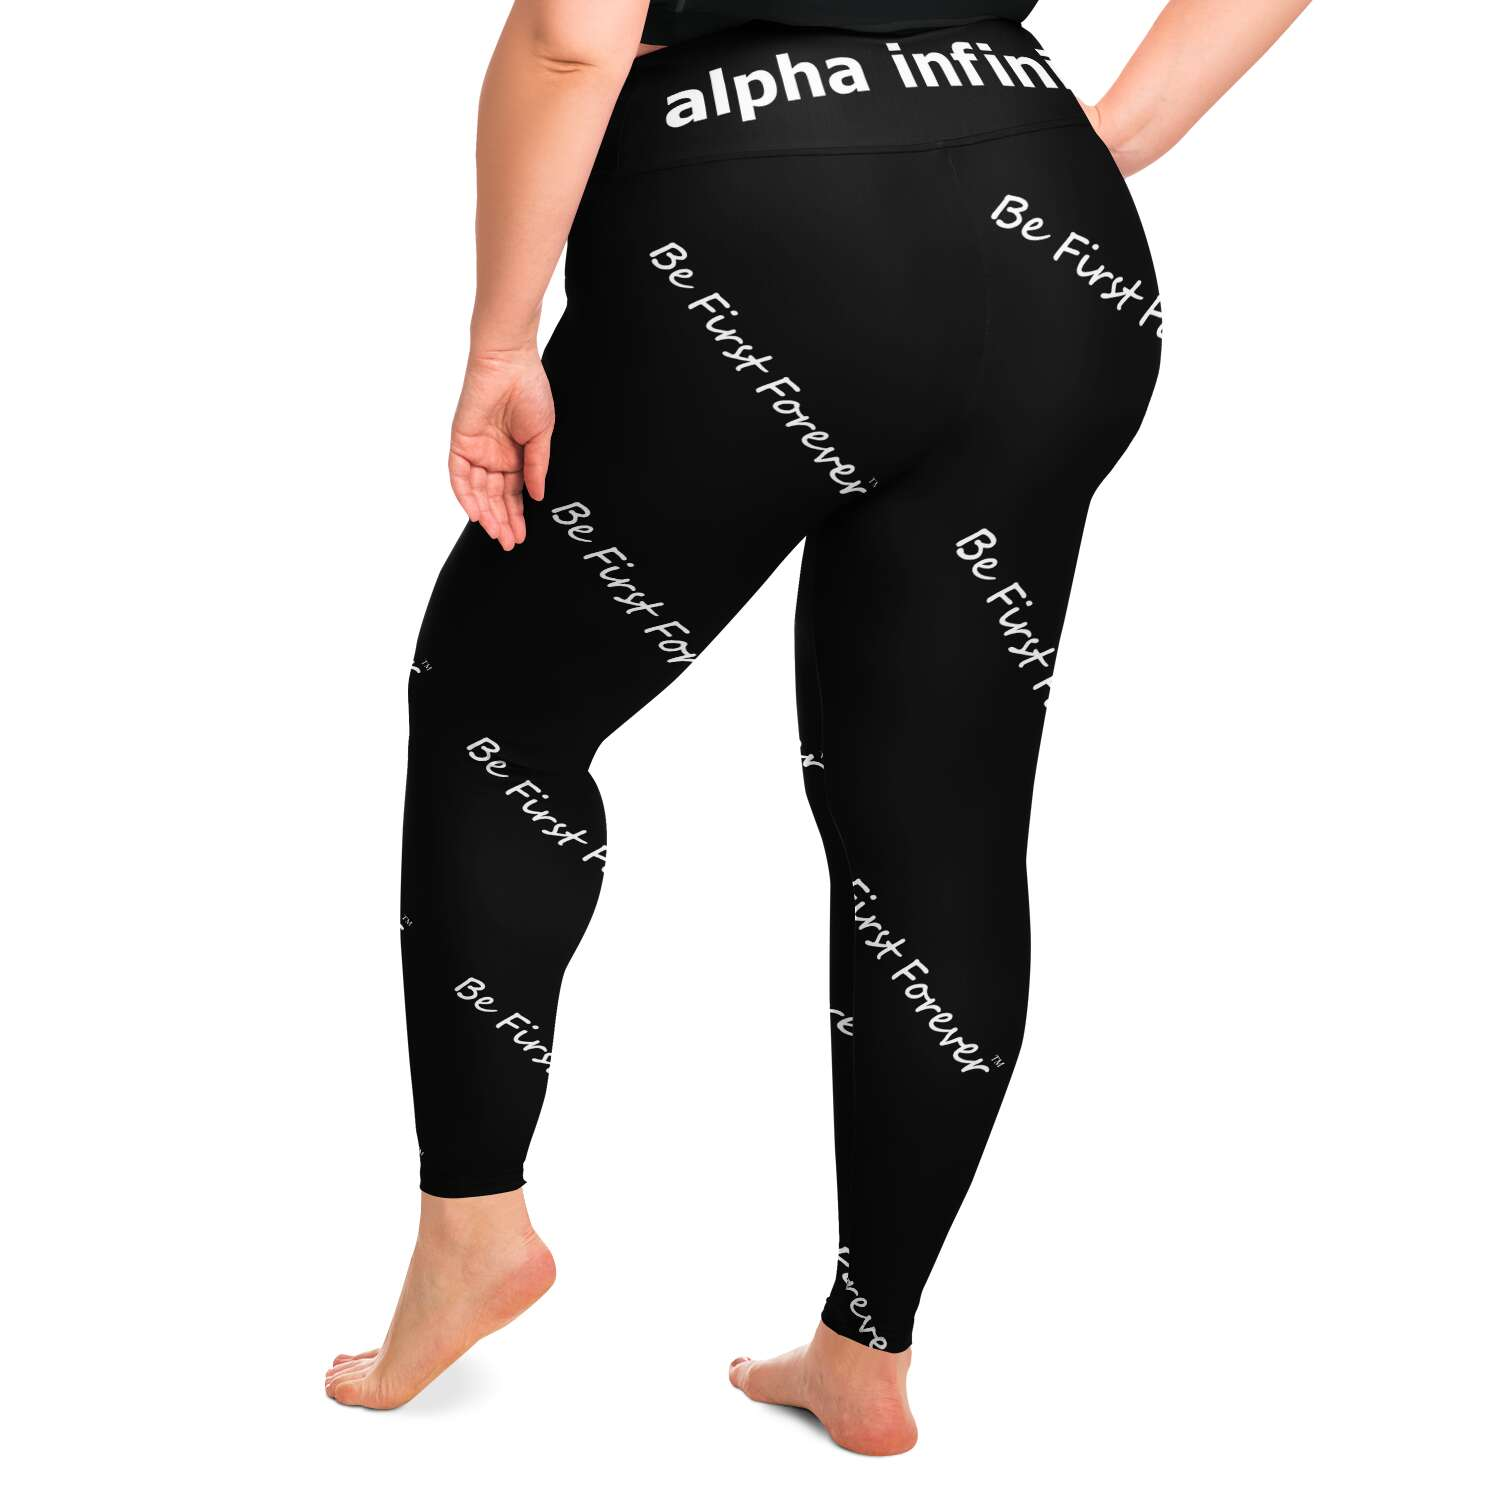 alpha infinite®Be First Forever™ Leggings